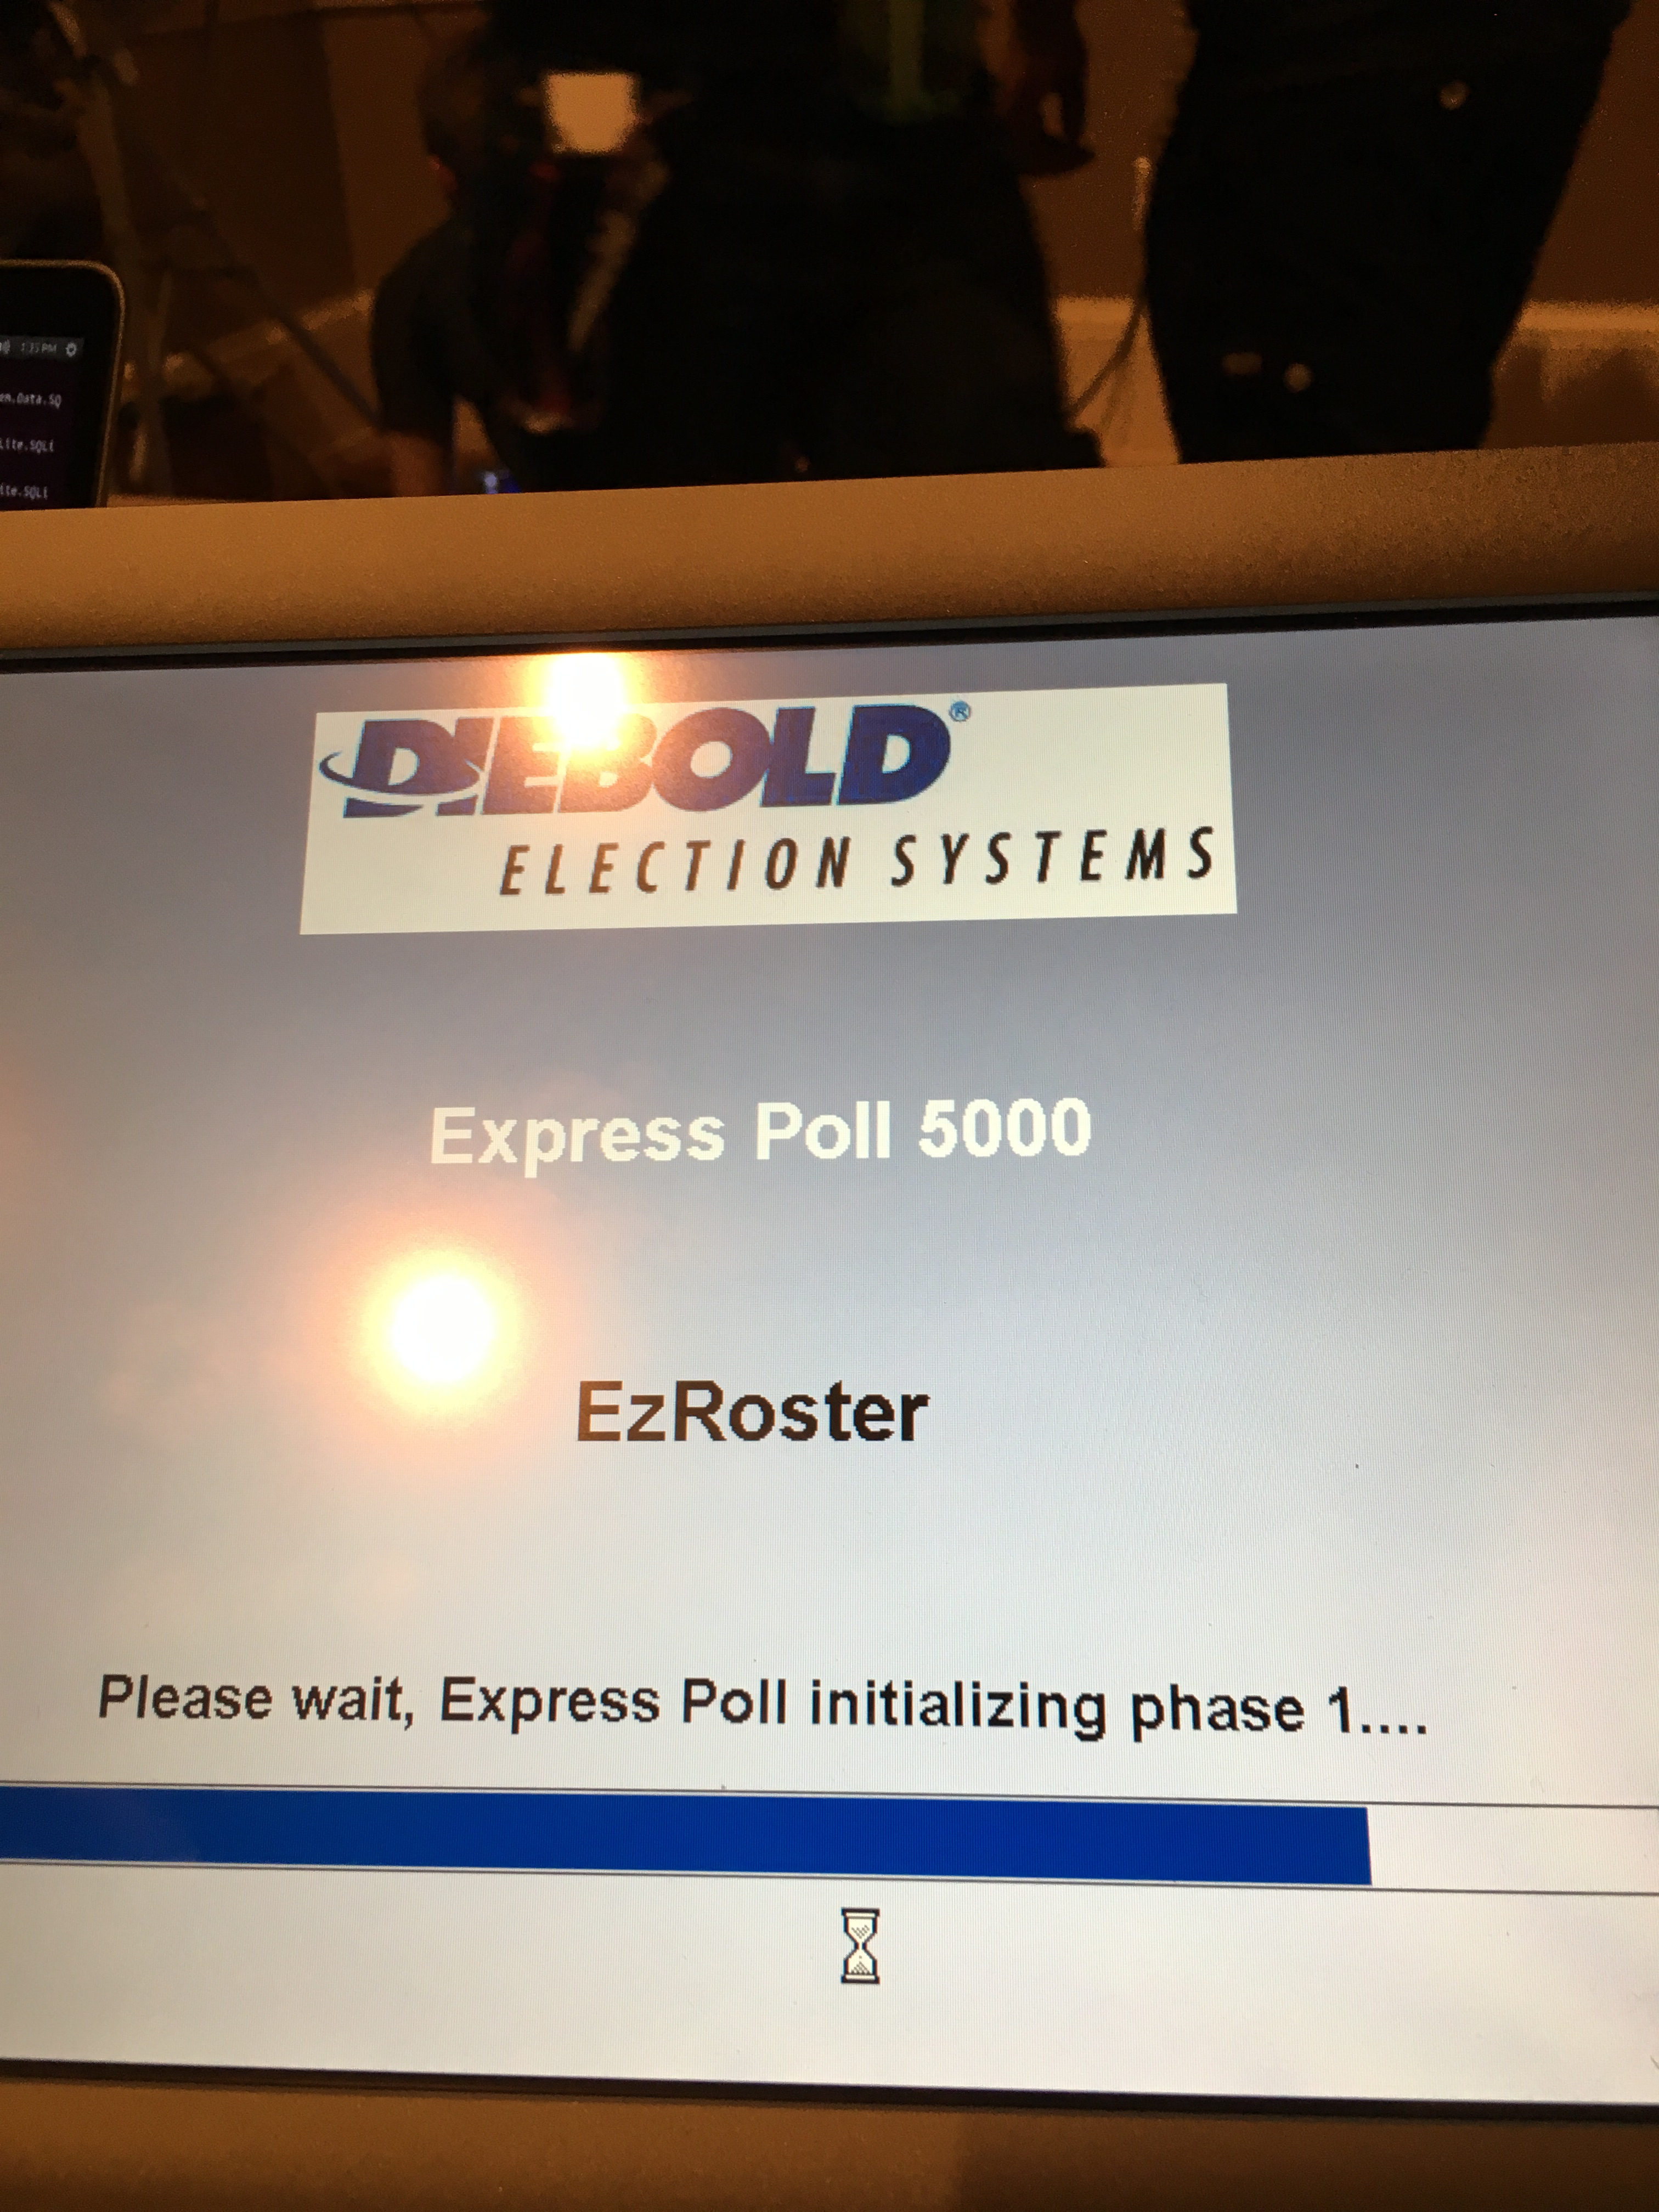 Diebold Express Poll 5000 is very insecure